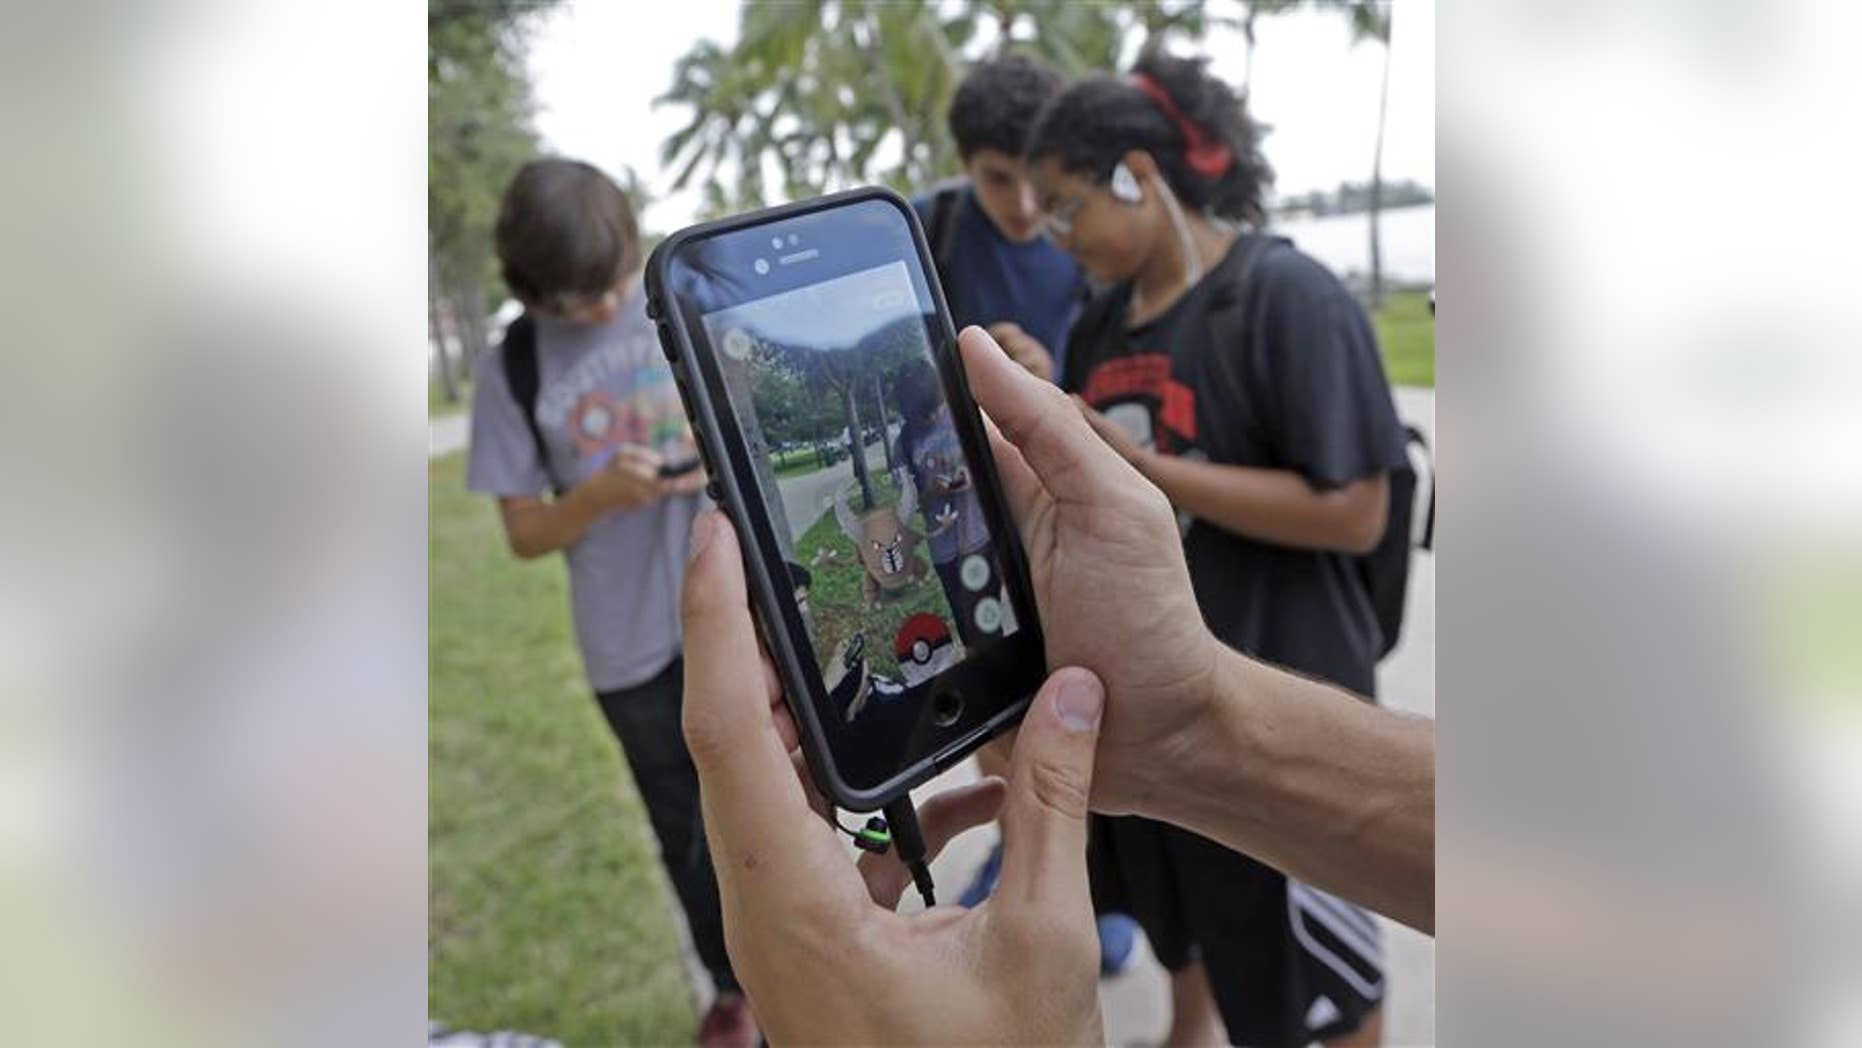 """Pinsir, a Pokemon, is found by a group of Pokemon Go players at Bayfront Park in downtown Miami on July 12, 2016, as the """"Pokemon Go"""" craze has sent legions of players hiking around cities and battling with """"pocket monsters"""" on their smartphones. (AP Photo/Alan Diaz)"""